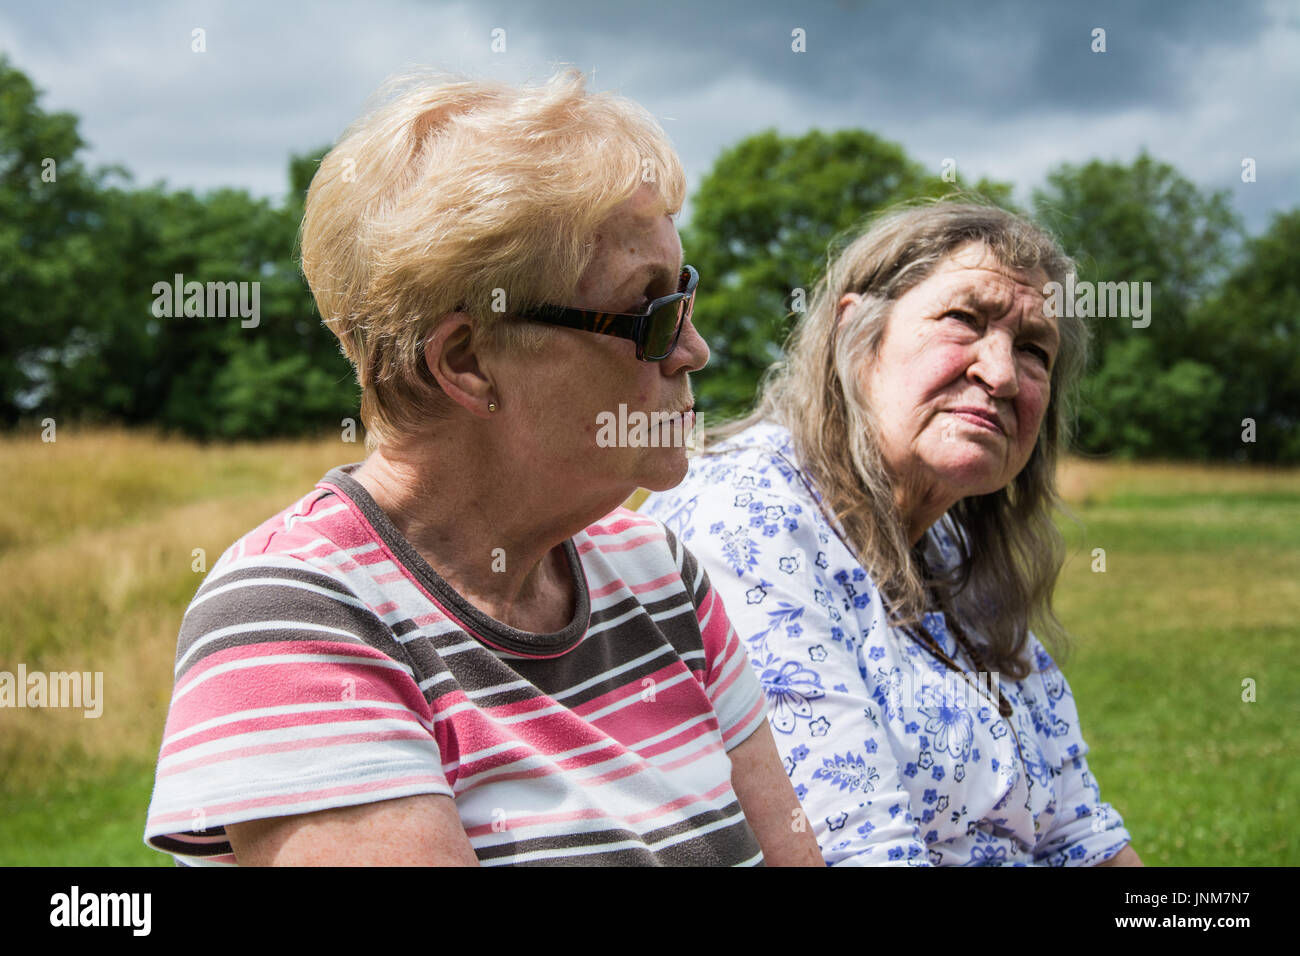 Two elderly women worrying about the future, concerned about their pensions, anxious about the state of the nation. UK. - Stock Image